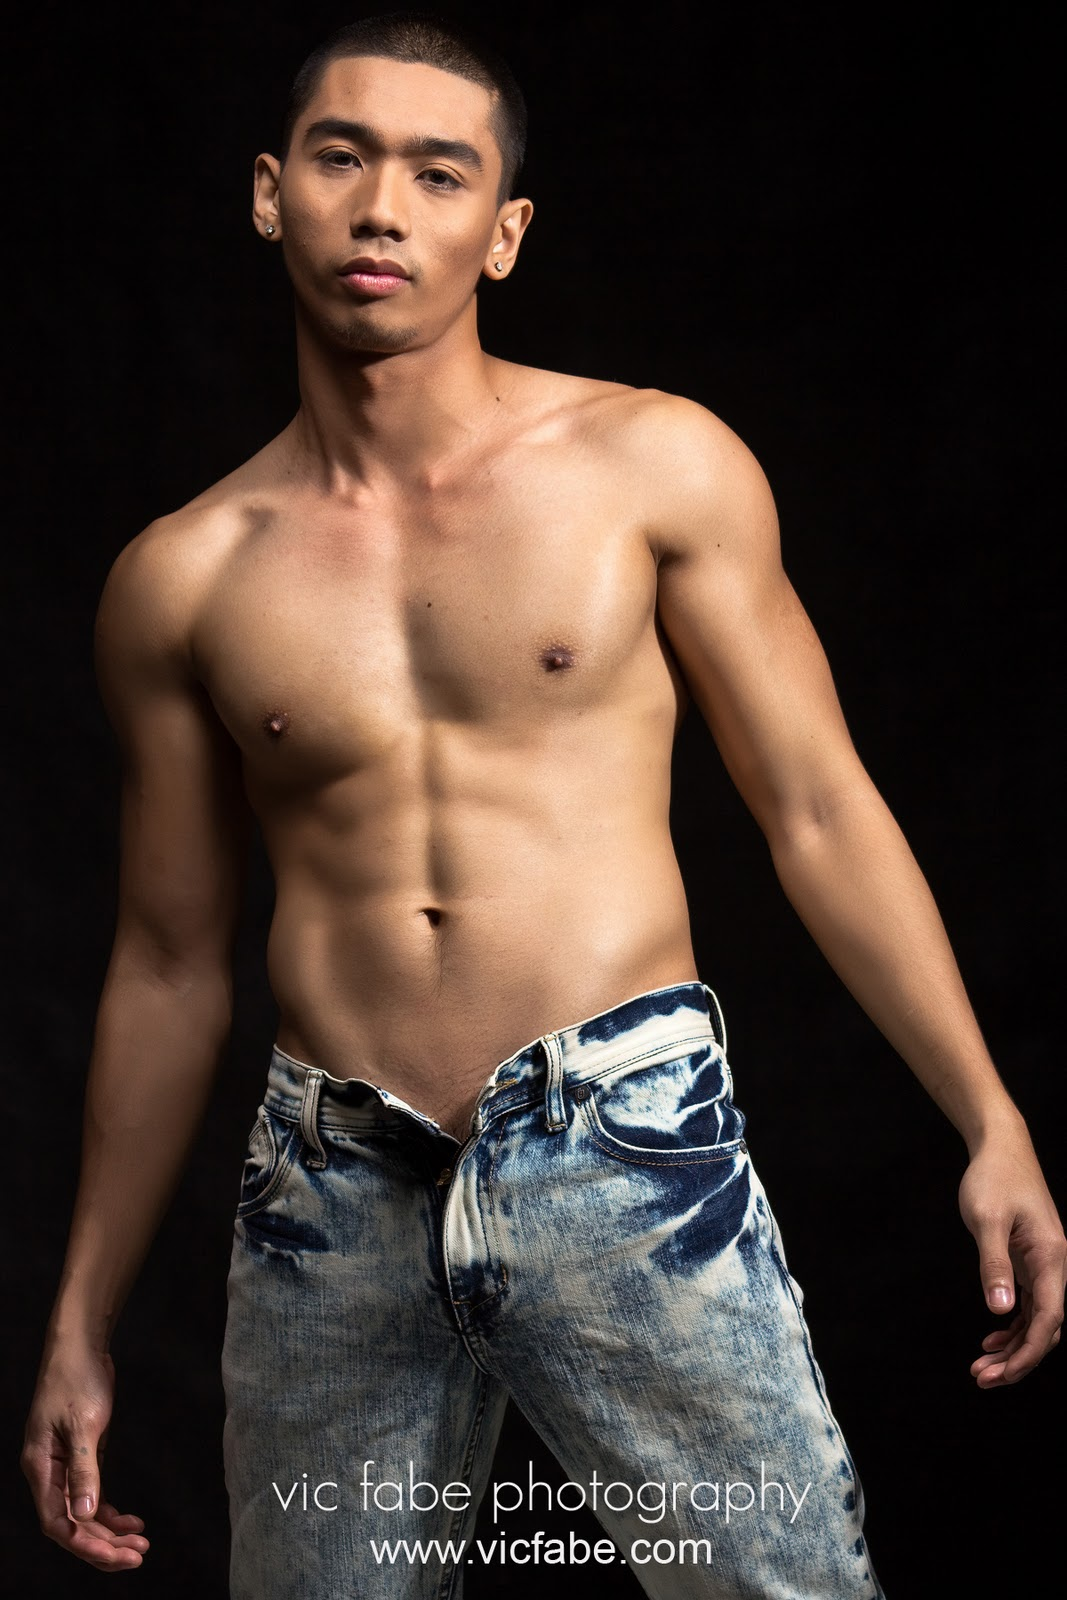 Asian underwear model bro